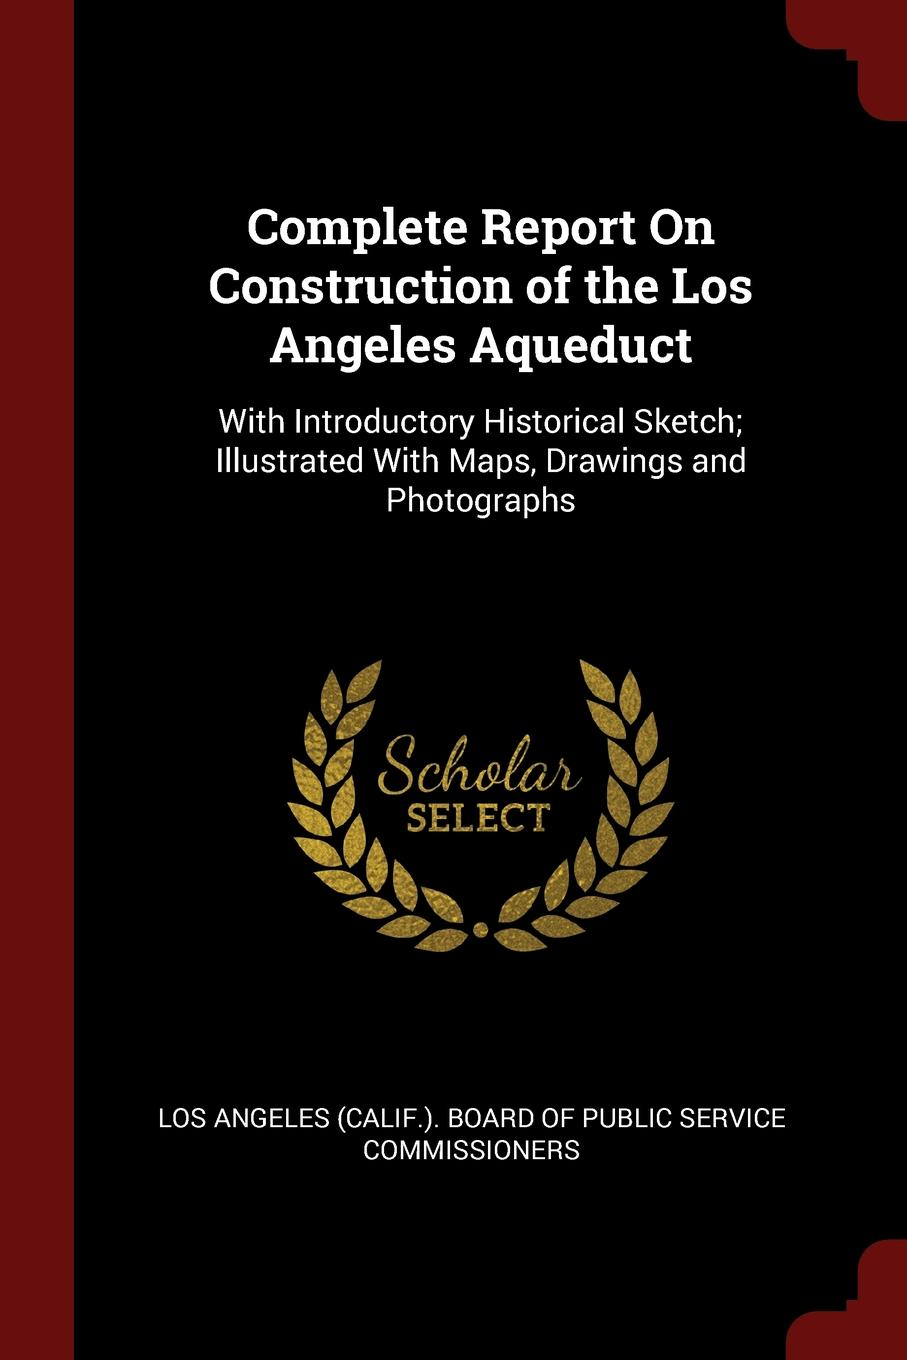 Complete Report On Construction of the Los Angeles Aqueduct. With Introductory Historical Sketch; Illustrated Maps, Drawings and Photographs